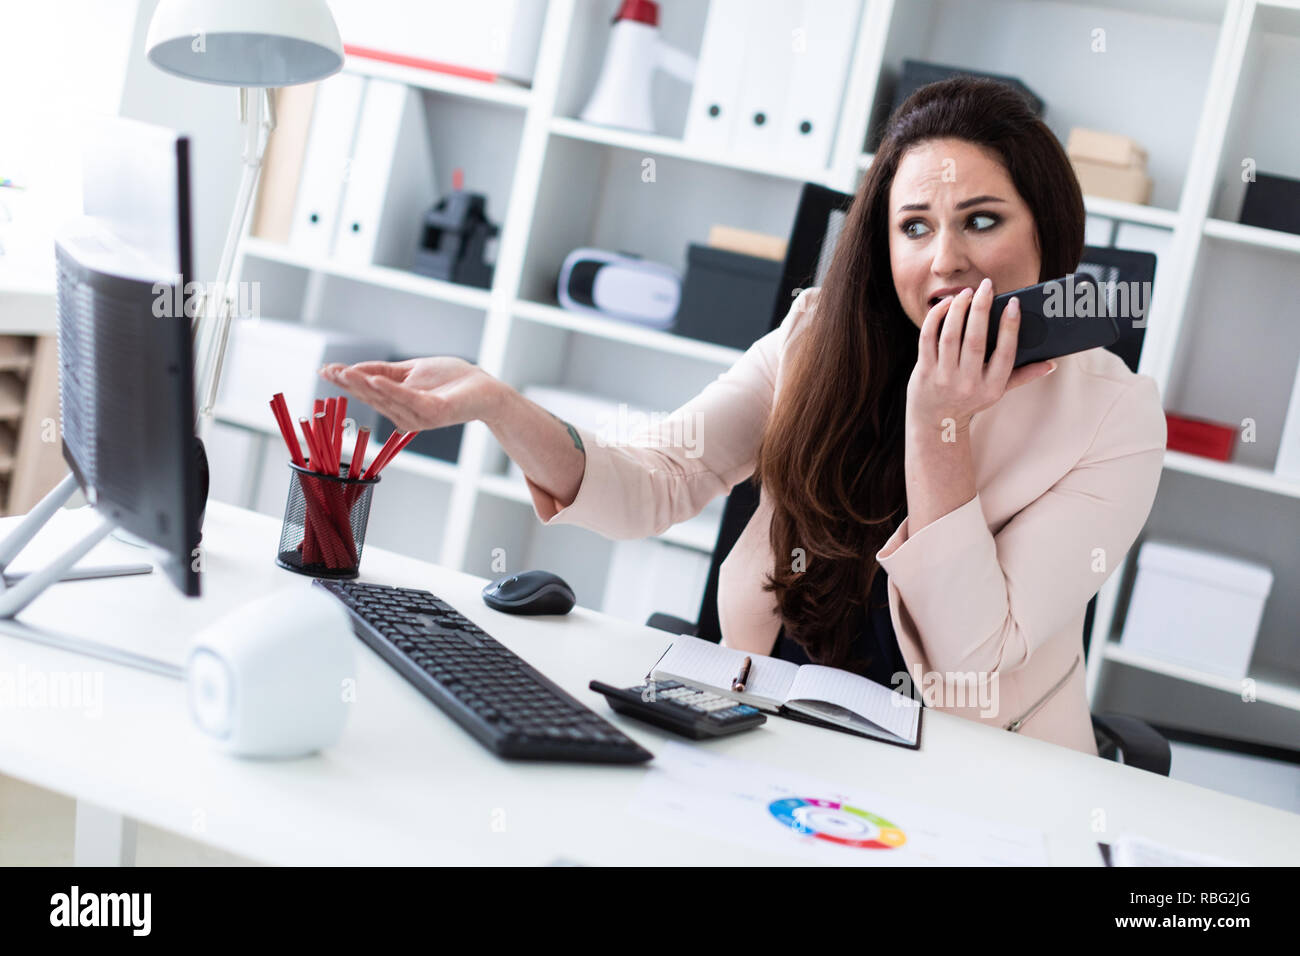 A young girl sitting at a computer old, holding a phone and looking at the monitor. - Stock Image